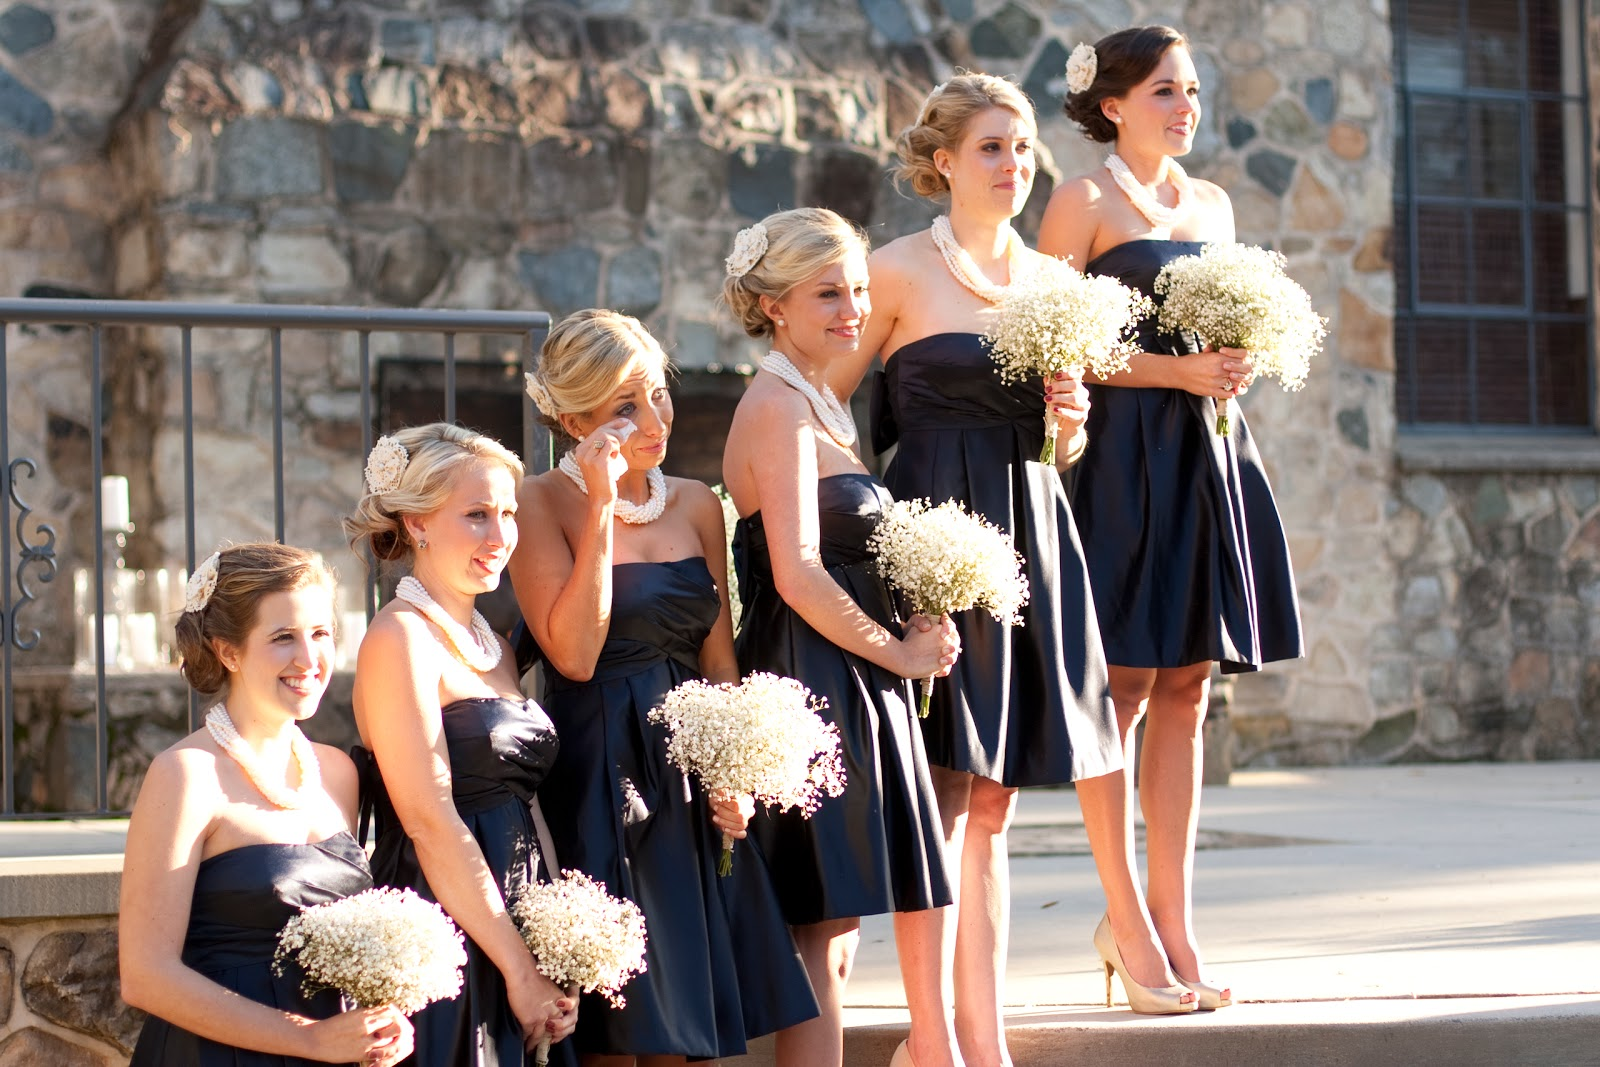 Long black bridesmaids dresses and white flowers the knot long black bridesmaids dresses and white flowers the knot pinterest long black bridesmaid dresses black bridesmaids and white flowers ombrellifo Gallery